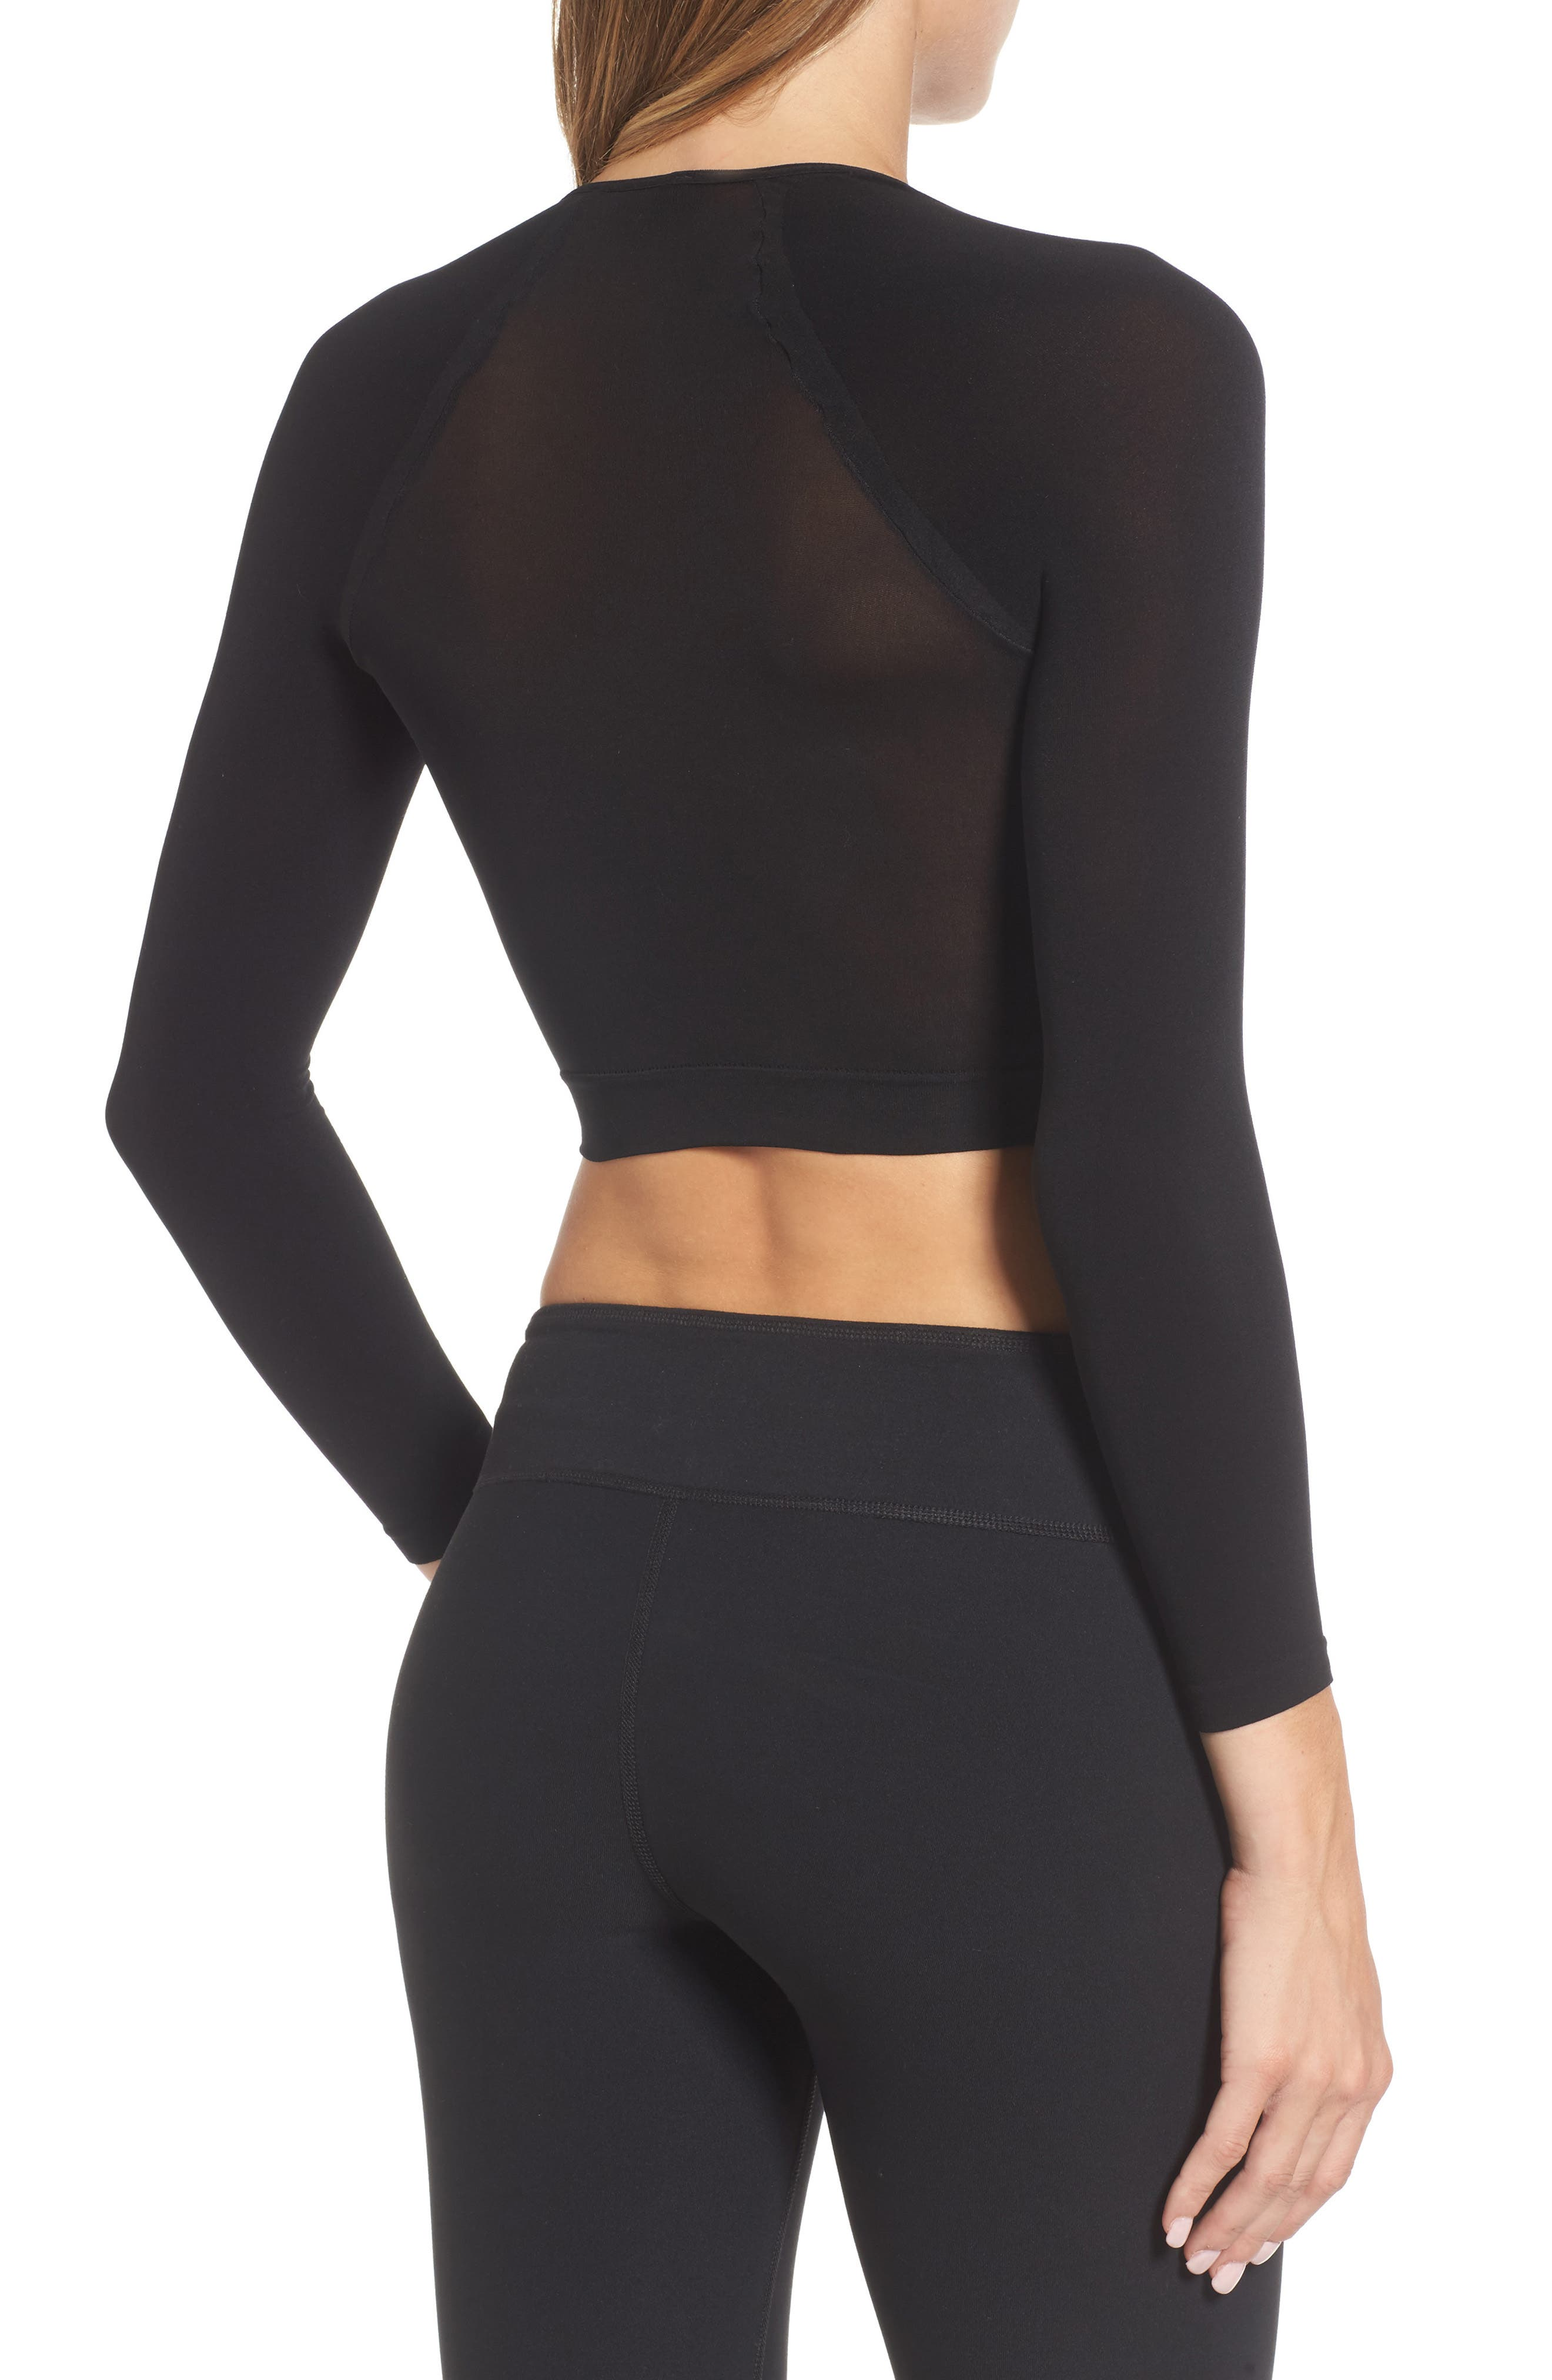 Arm Tights Crop Top,                             Alternate thumbnail 2, color,                             Very Black